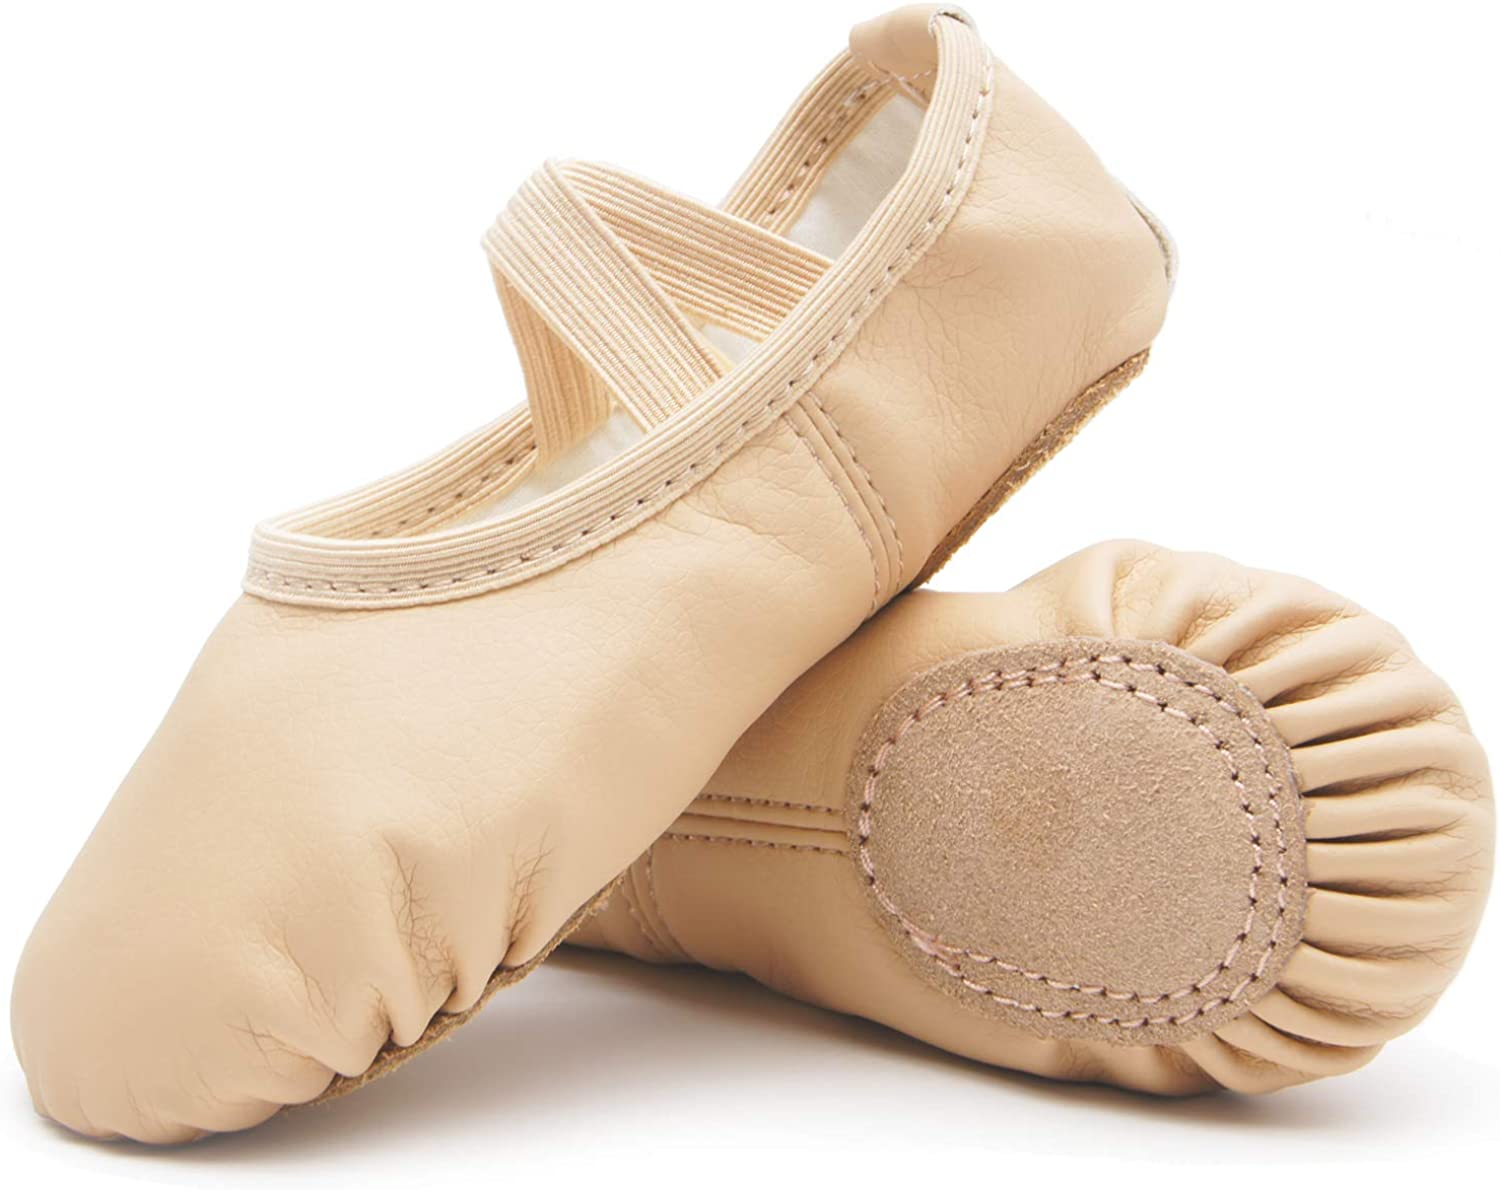 DIPUG Ballet Shoes for Girls Toddler Ballet Shoes Leather Dance Ballet Slippers No Ties